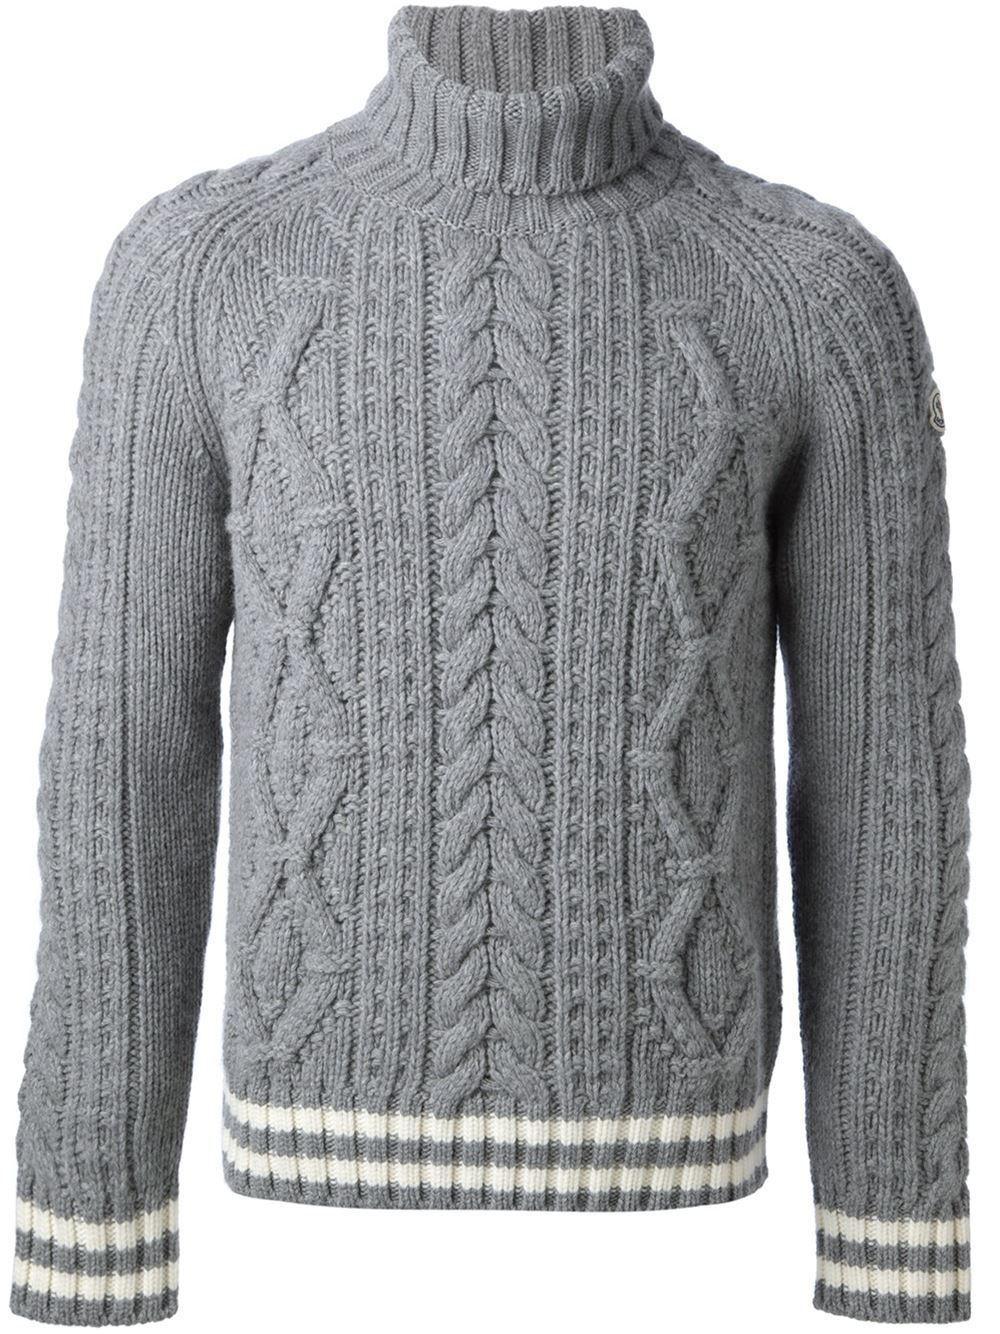 6e3344ad75f3 MONCLER Aran Knit Sweater ◊ FARFETCH